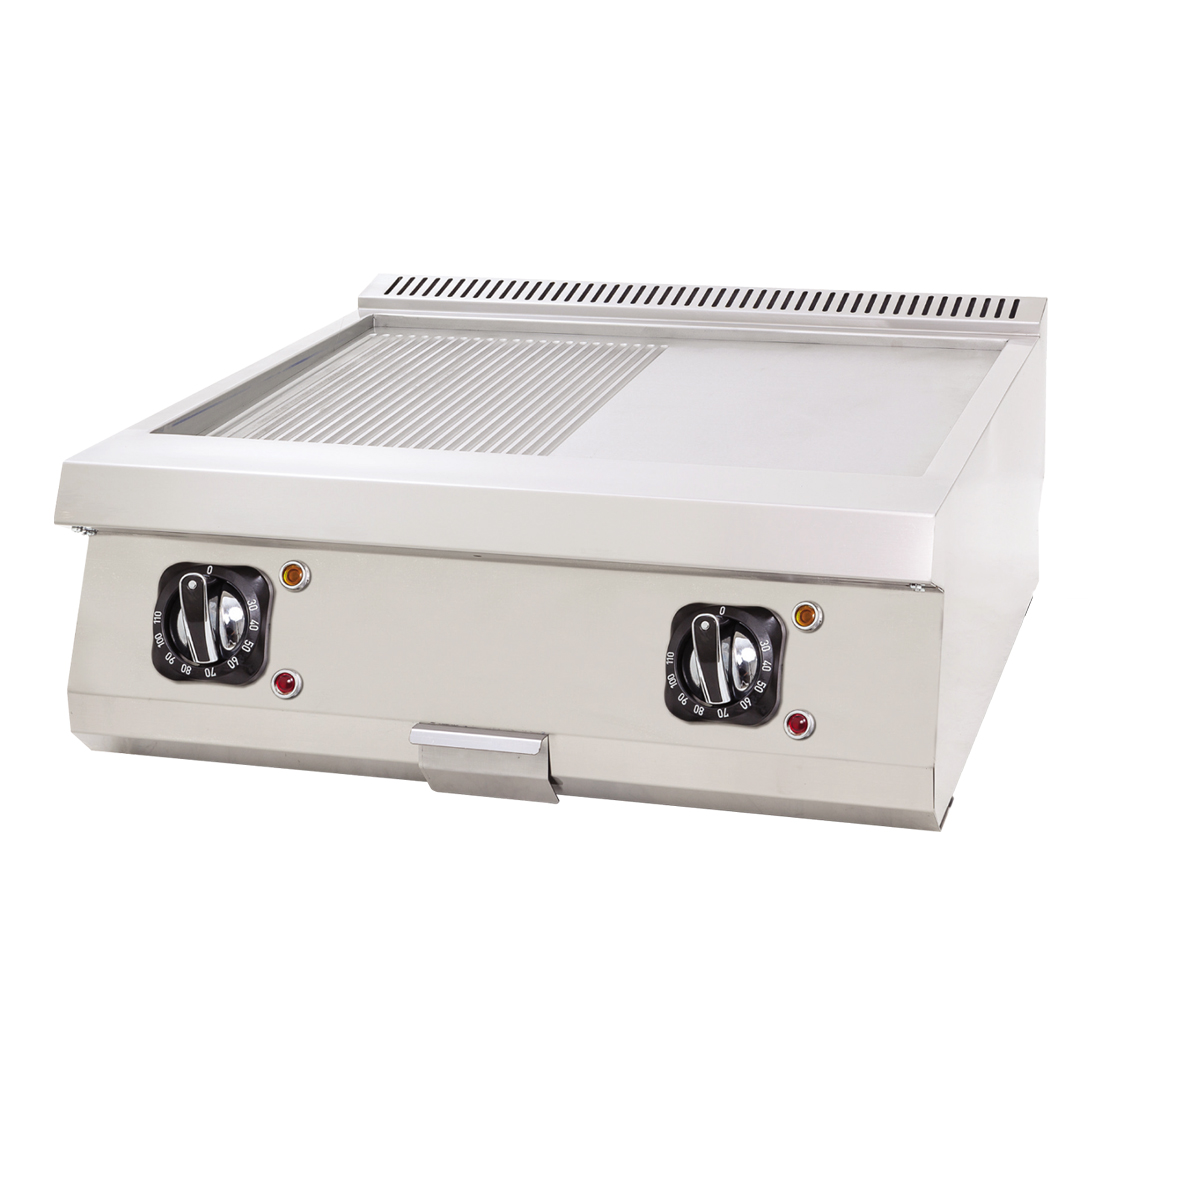 Electric Grill Flat+Grooved - 80x60